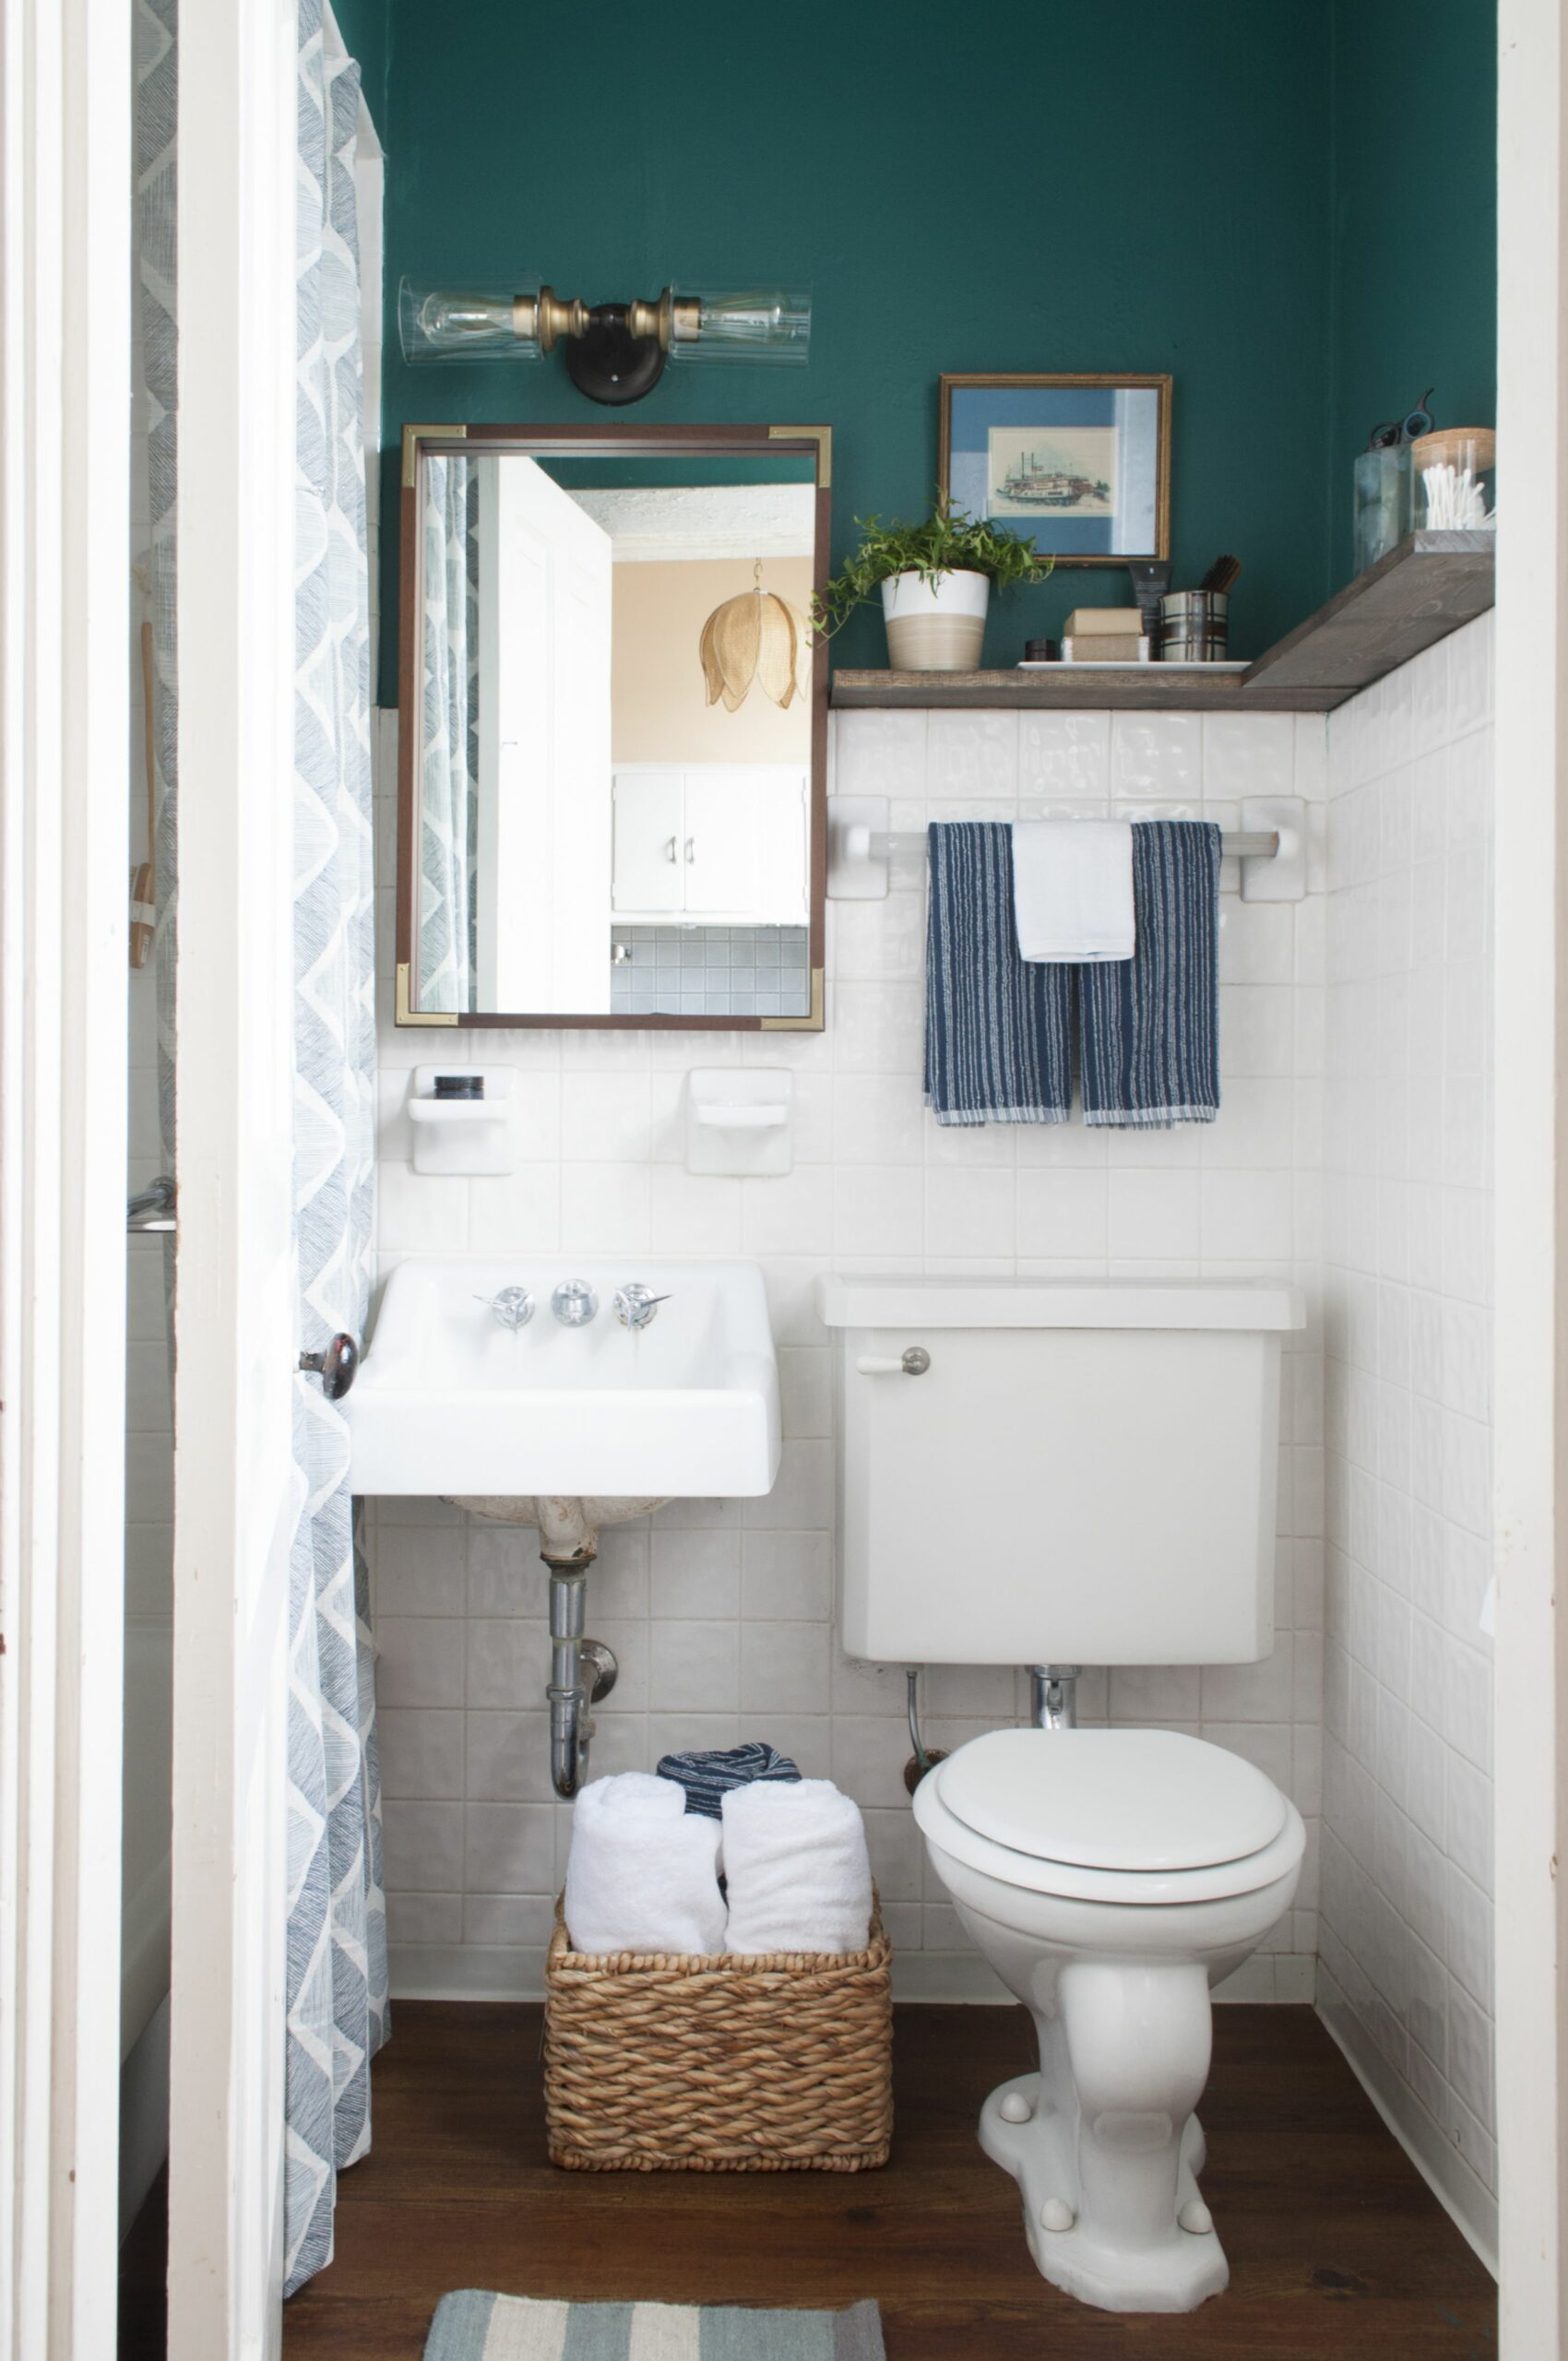 9 Stylish Solutions for Ugly Rental Bathrooms | Apartment Therapy - bathroom ideas rental